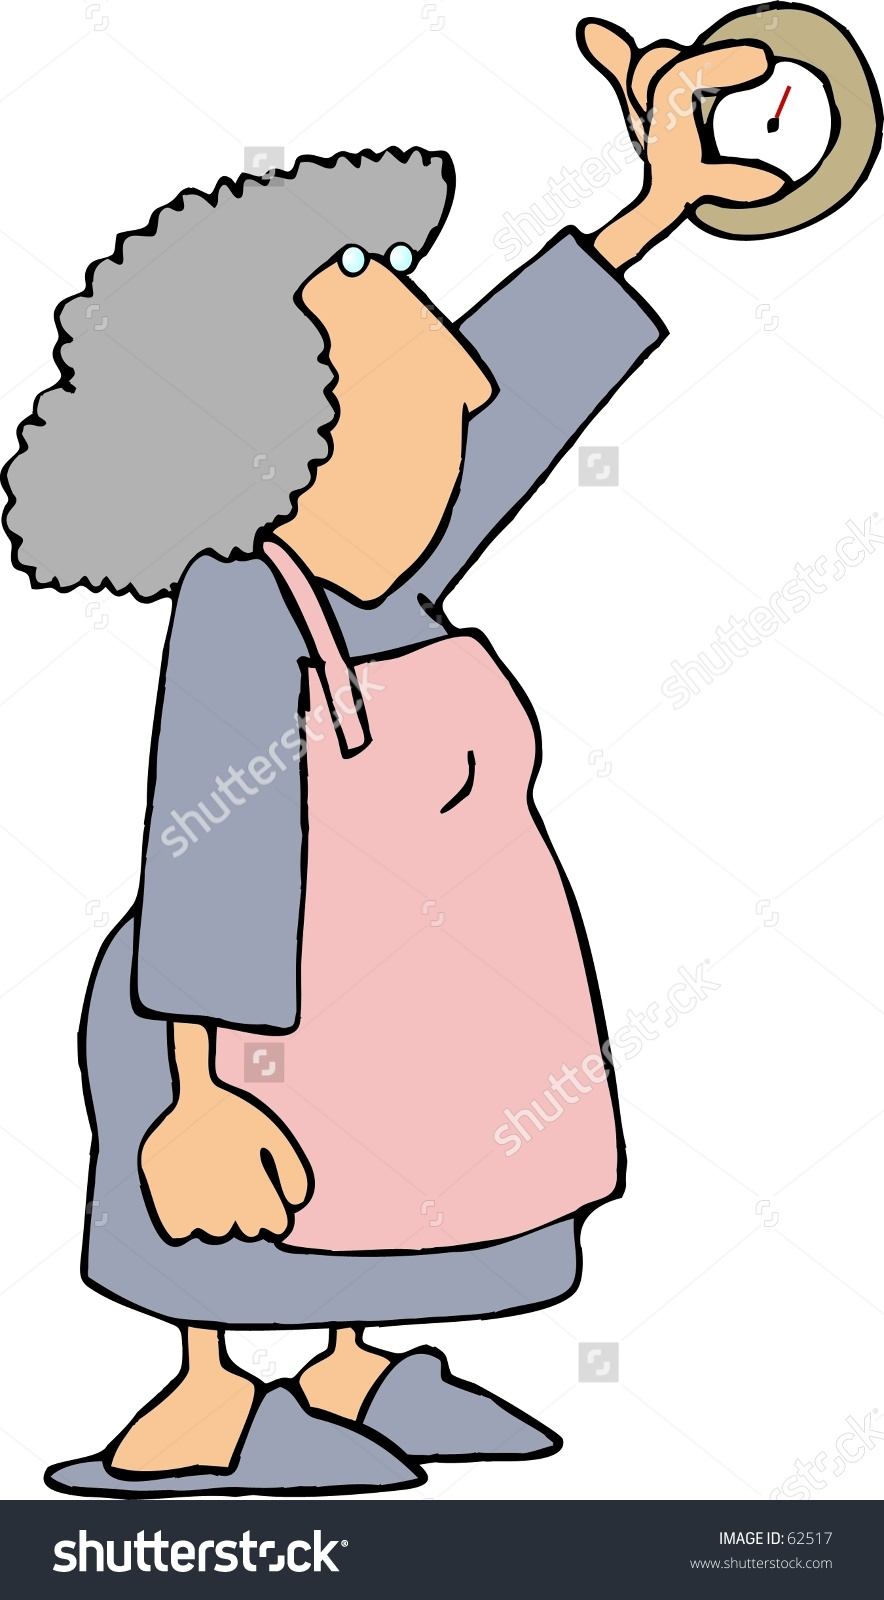 Clipart Illustration Of A Woman Adjusting A Thermostat.